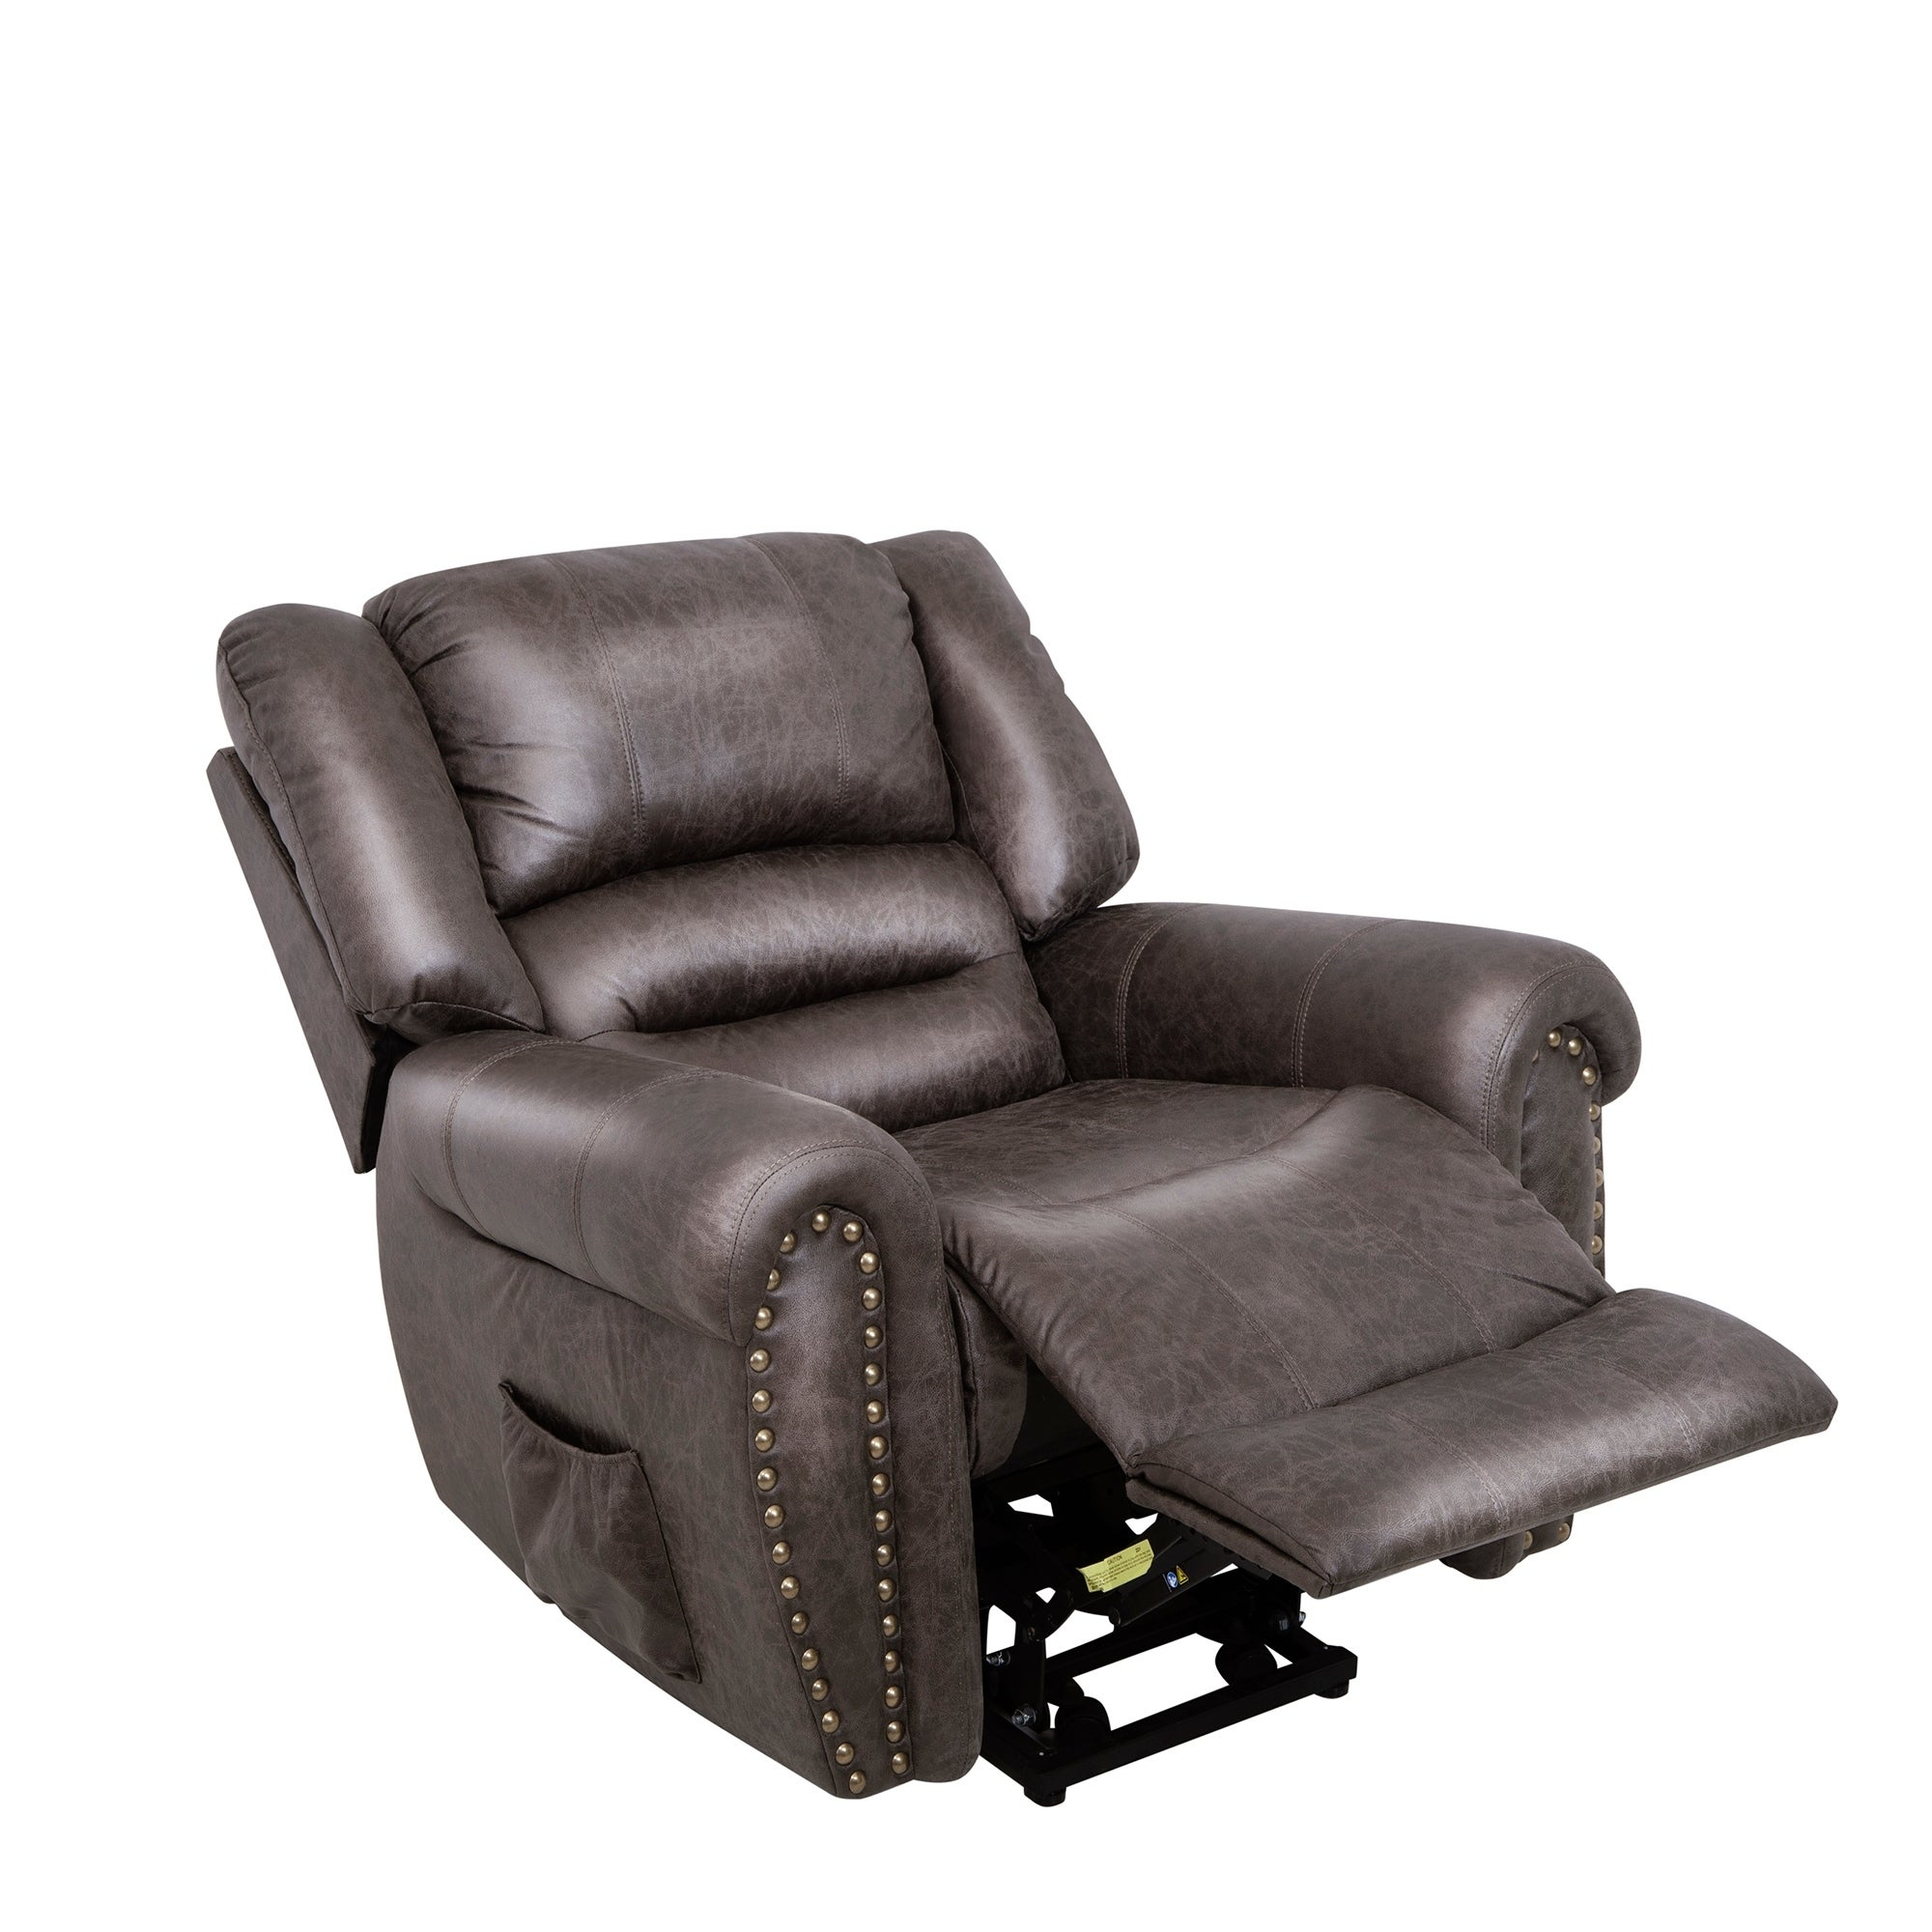 Stupendous Copper Grove Makiivka Heavy Duty Power Lift Recliner Chair With Built In Remote Evergreenethics Interior Chair Design Evergreenethicsorg